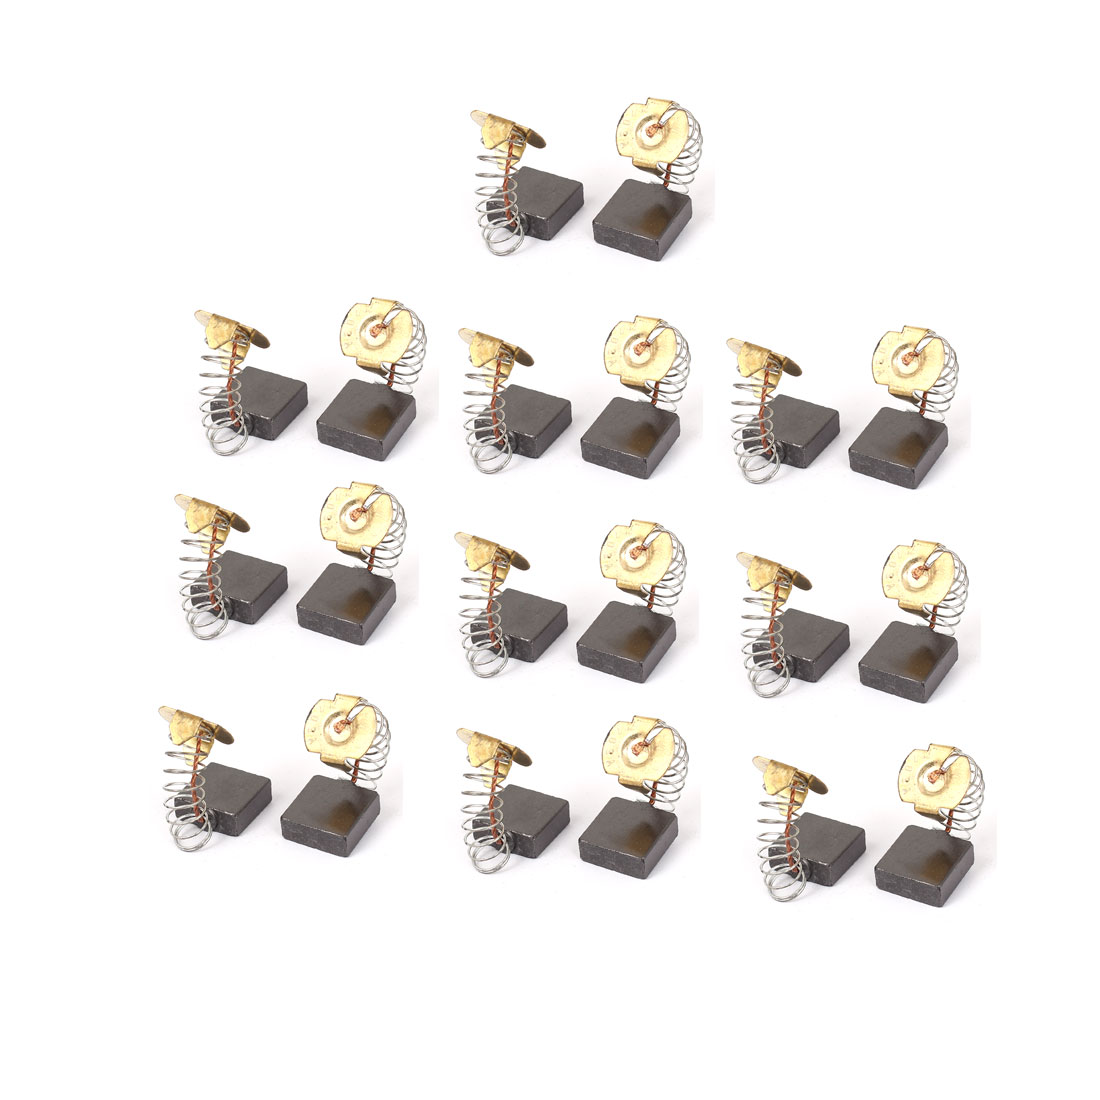 17mm x 18mm x 7mm Motor Carbon Brushes 20 Pcs for Generic Electric Motor